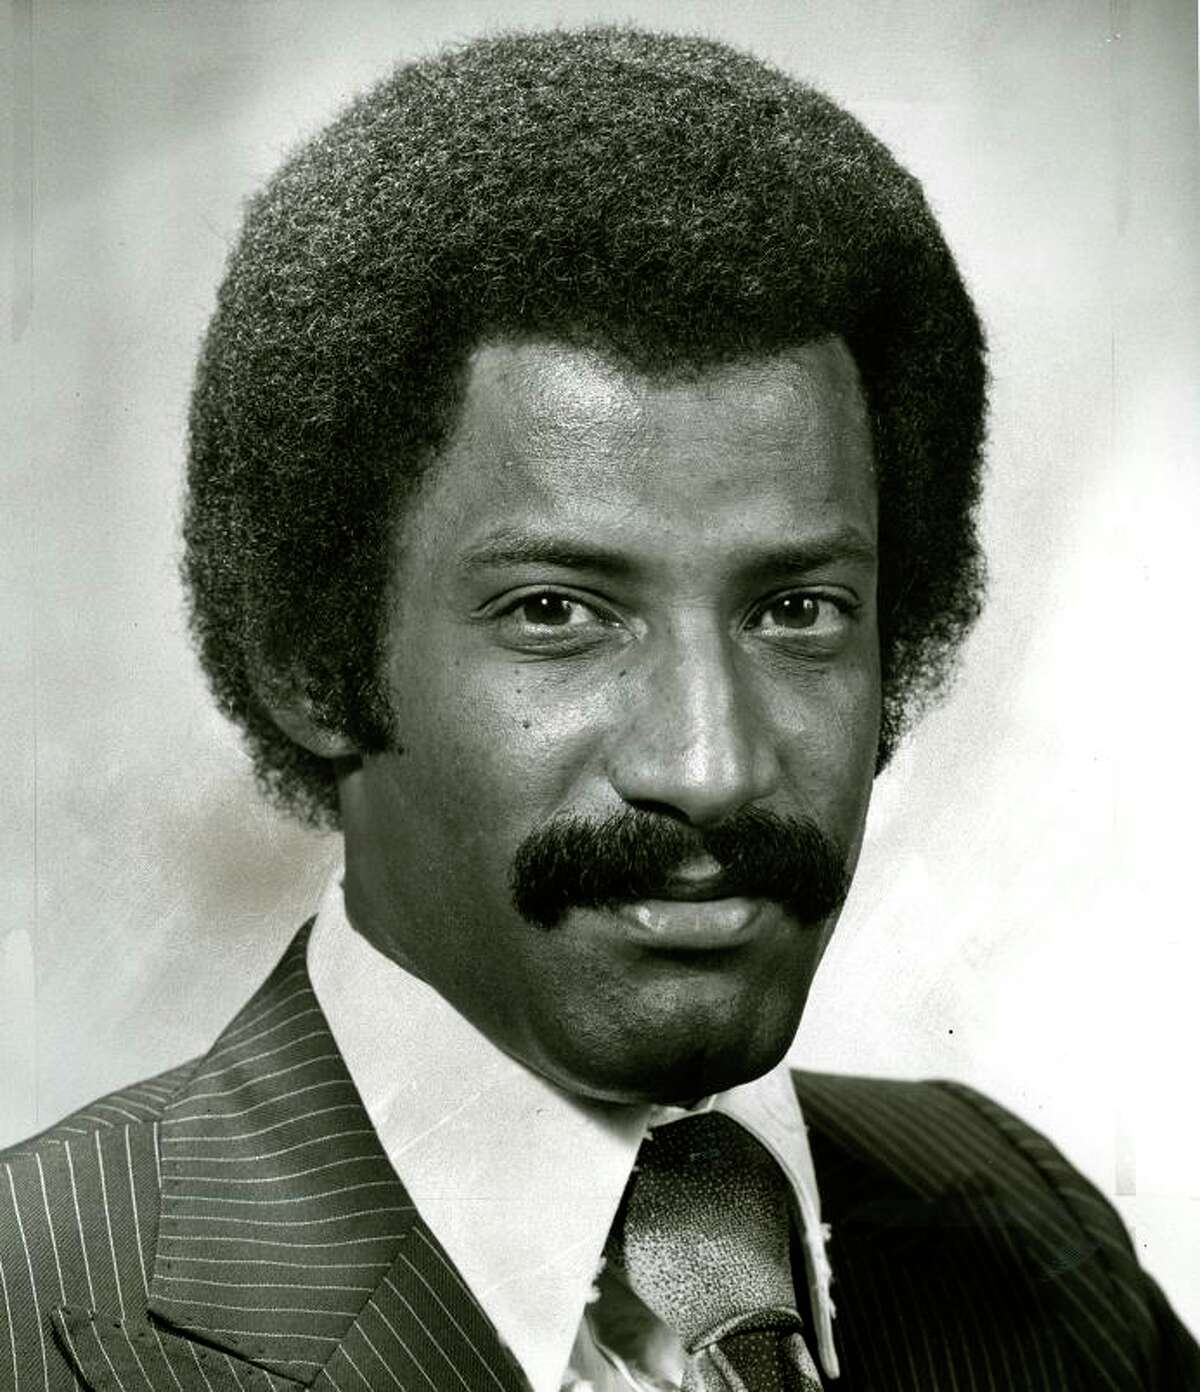 DENNIS RICHMOND (May 26, 1976): I met Richmond a couple of times at KTVU, and it was jarring to see him eat junk food. He had a big bag of chips at his desk. Richmond joined KTVU in 1968, becoming anchor in 1976. He is Bay Area royalty.